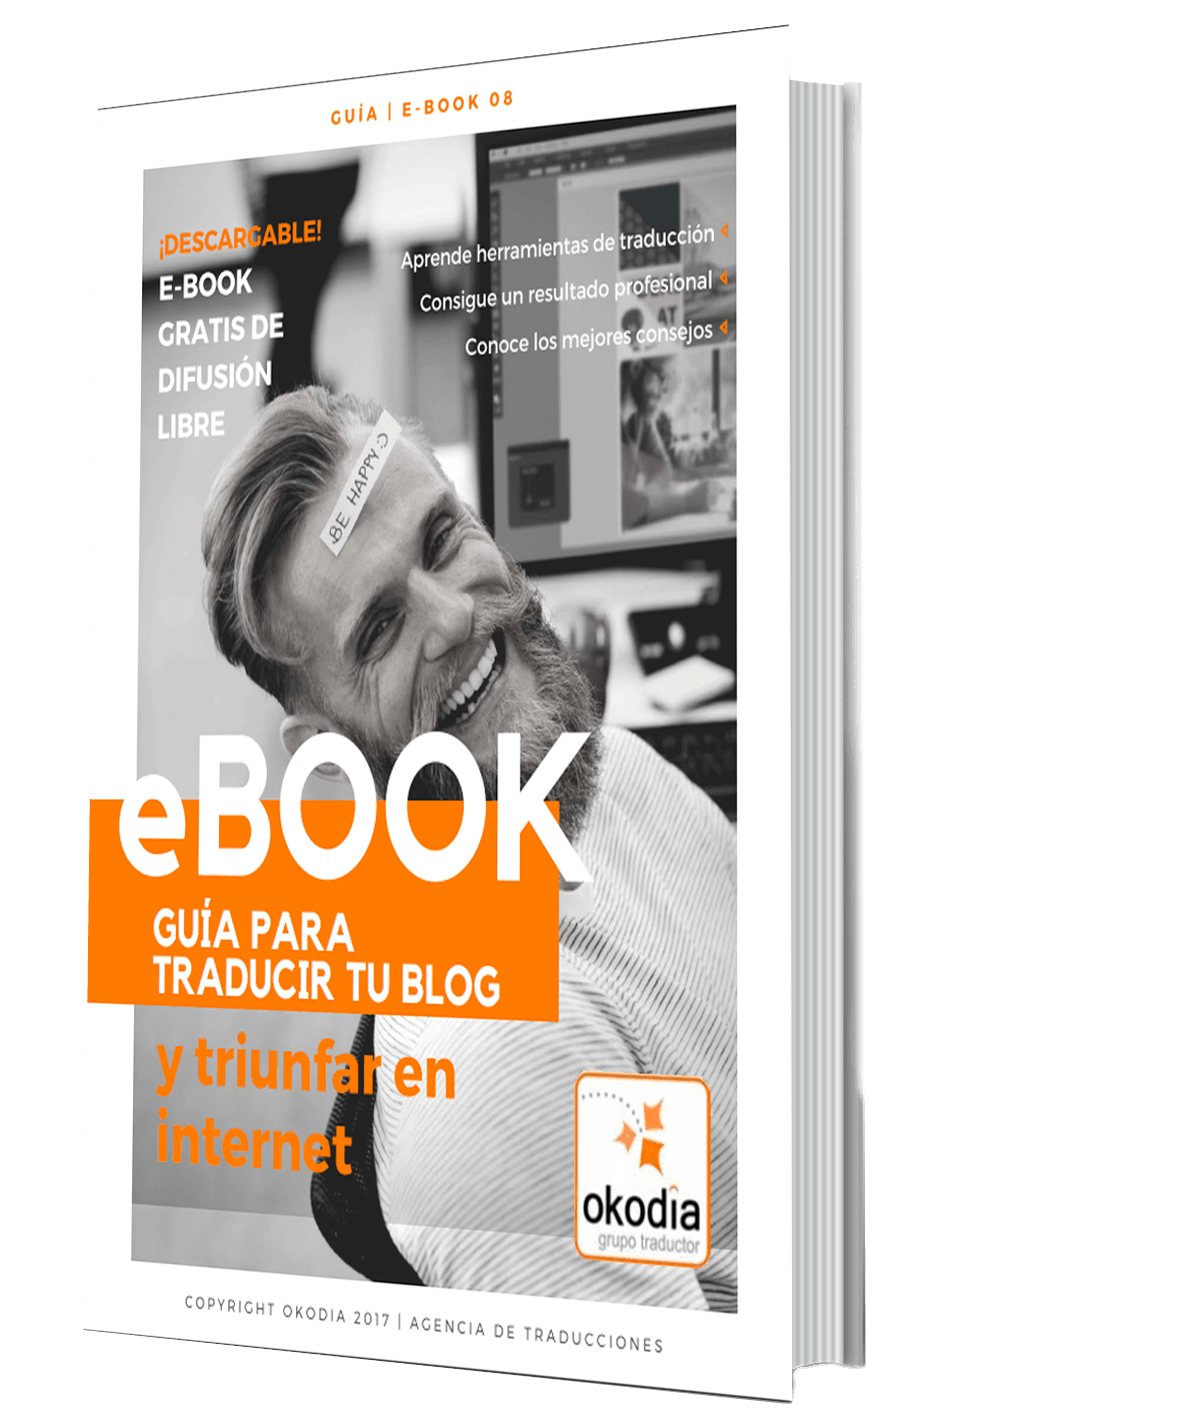 ebook8Final-trducir blog